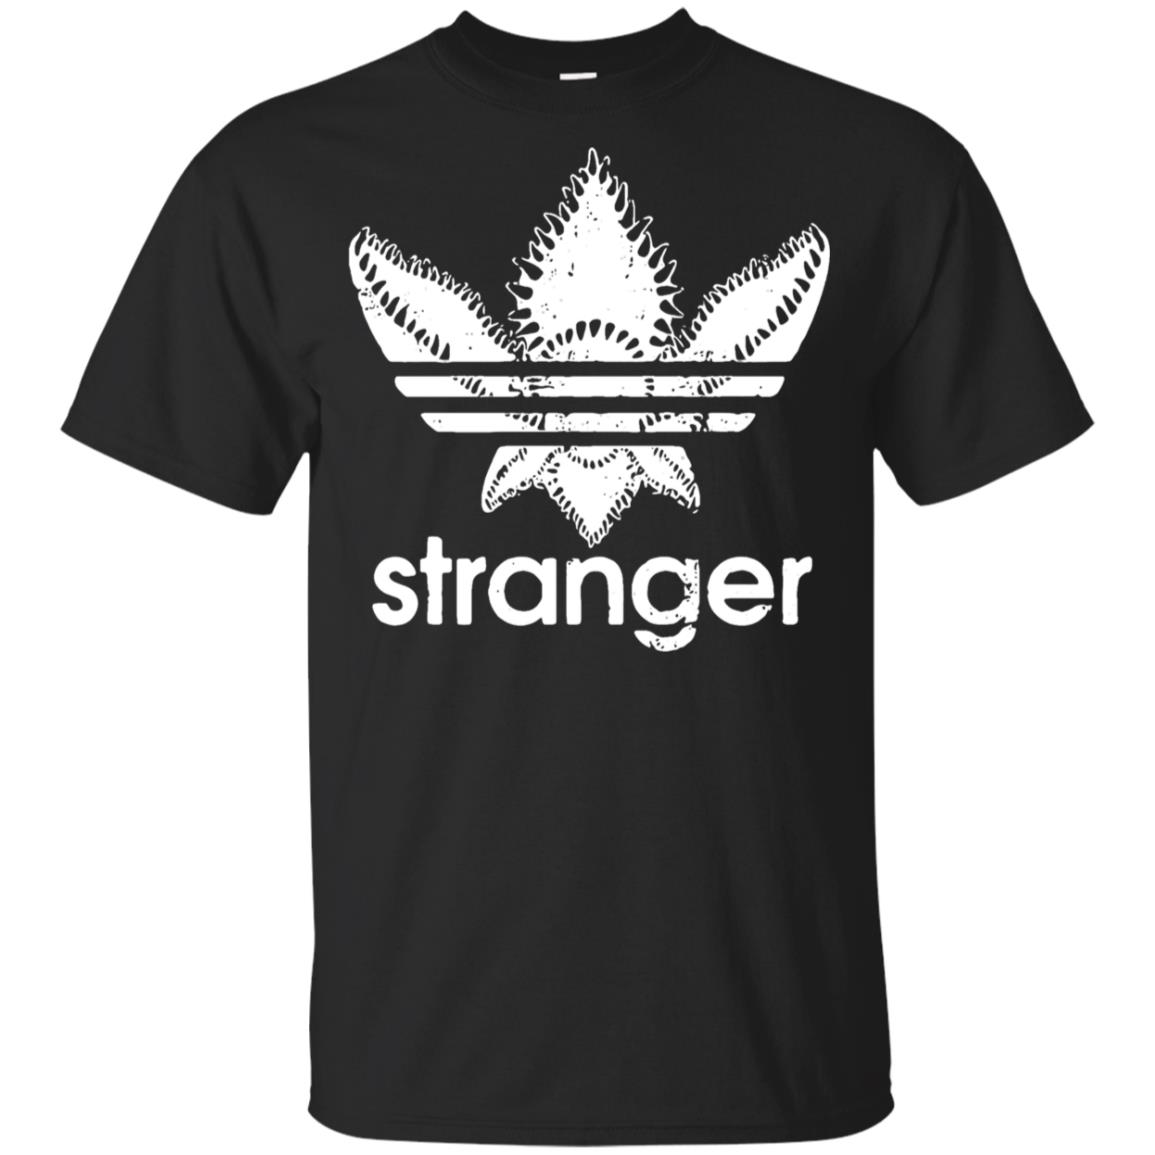 Buena suerte patrón Hay una tendencia  Demogorgon Adidas Stranger Things Youth T-Shirt - UnicornAZ - Fortnite,  Sport, Trending apparel